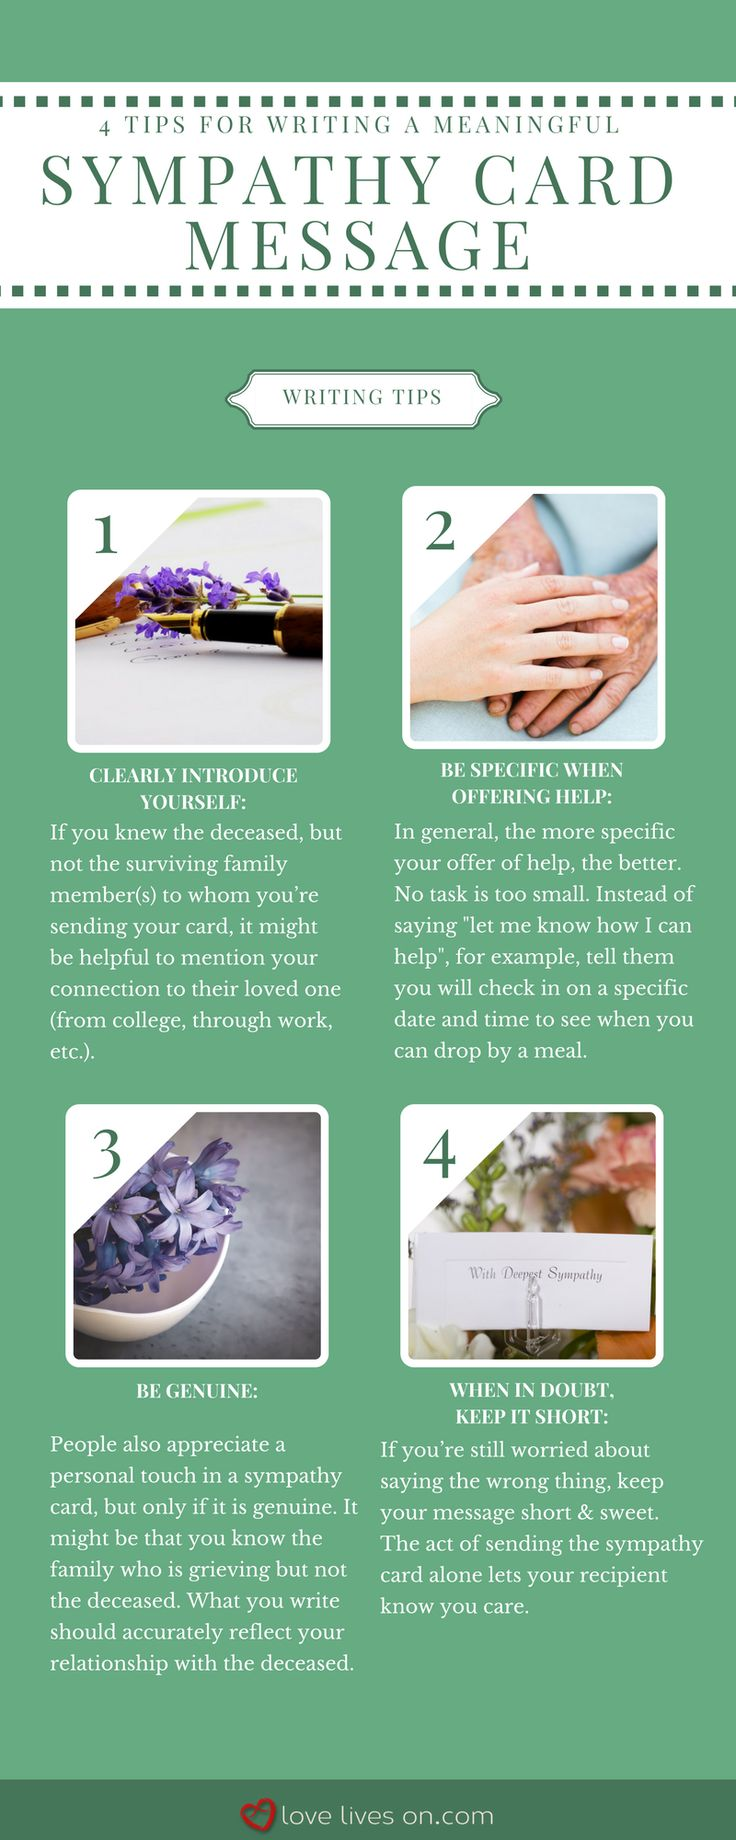 Infographic: 4 Tips for Writing a Meaningful Sympathy Card Message